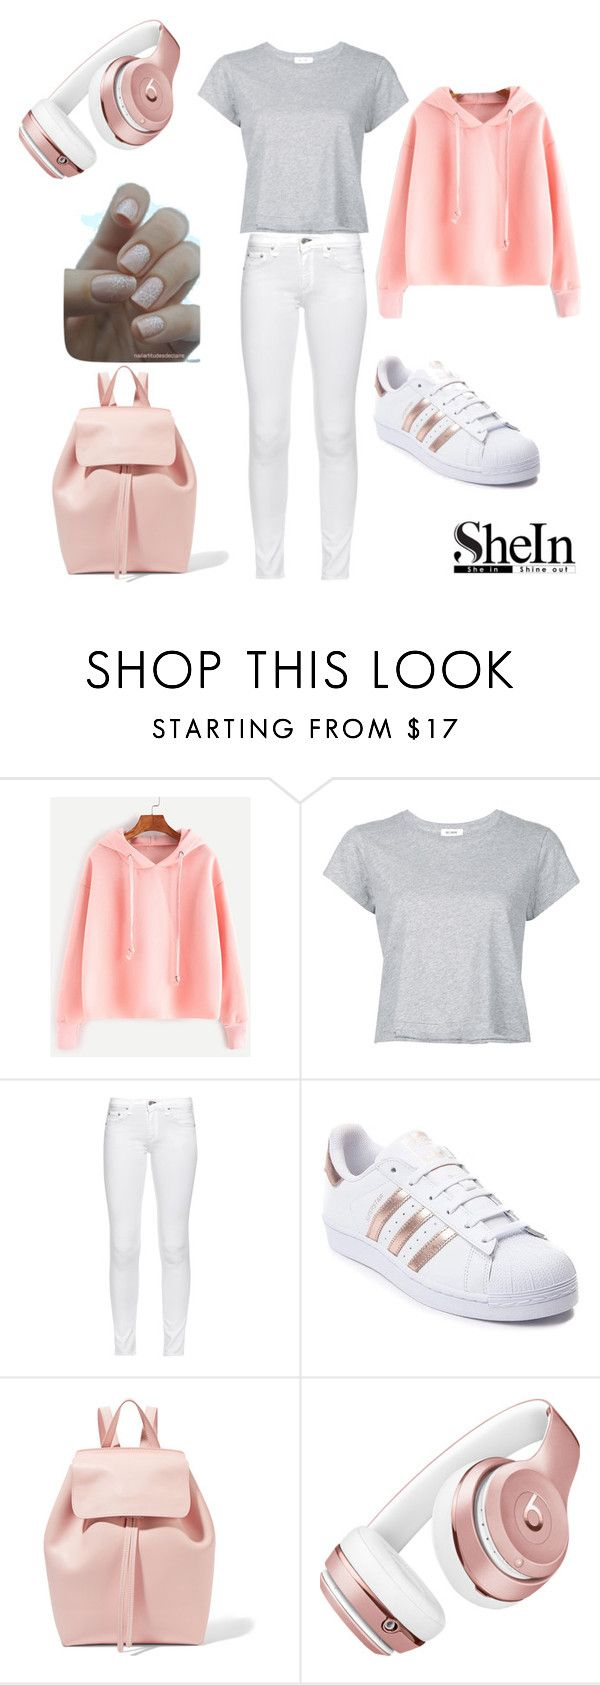 """Pink hoodie"" by fashion-queen25 ❤ liked on Polyvore featuring RE/DONE, rag & bone, adidas, Mansur Gavriel and Beats by Dr. Dre"